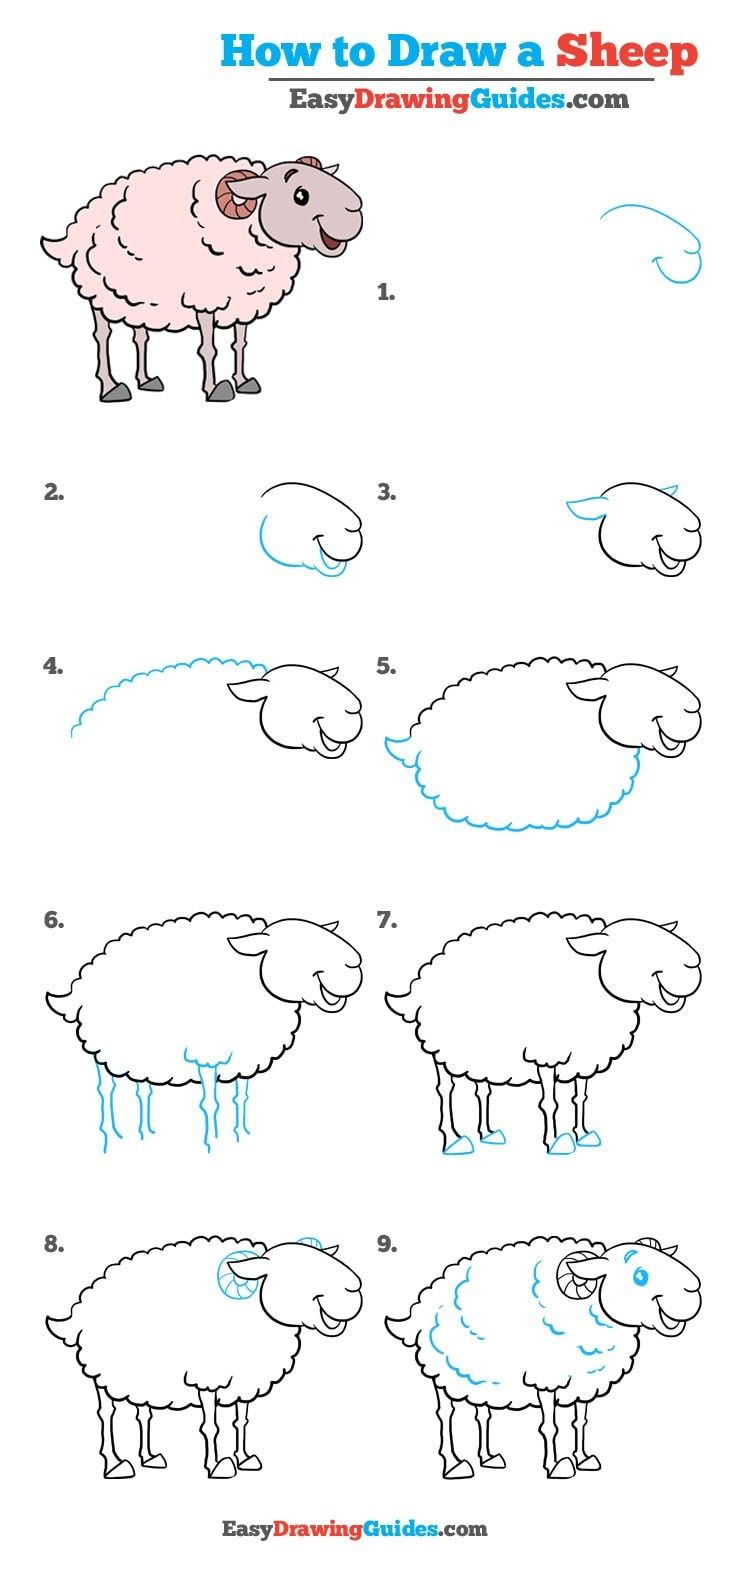 Learn How to Draw a Sheep: Easy Step-by-Step Drawing Tutorial for Kids and Beginners. #Sheep #DrawingTutorial #EasyDrawing See the full tutorial at https://easydrawingguides.com/how-to-draw-a-sheep-really-easy-drawing-tutorial/.